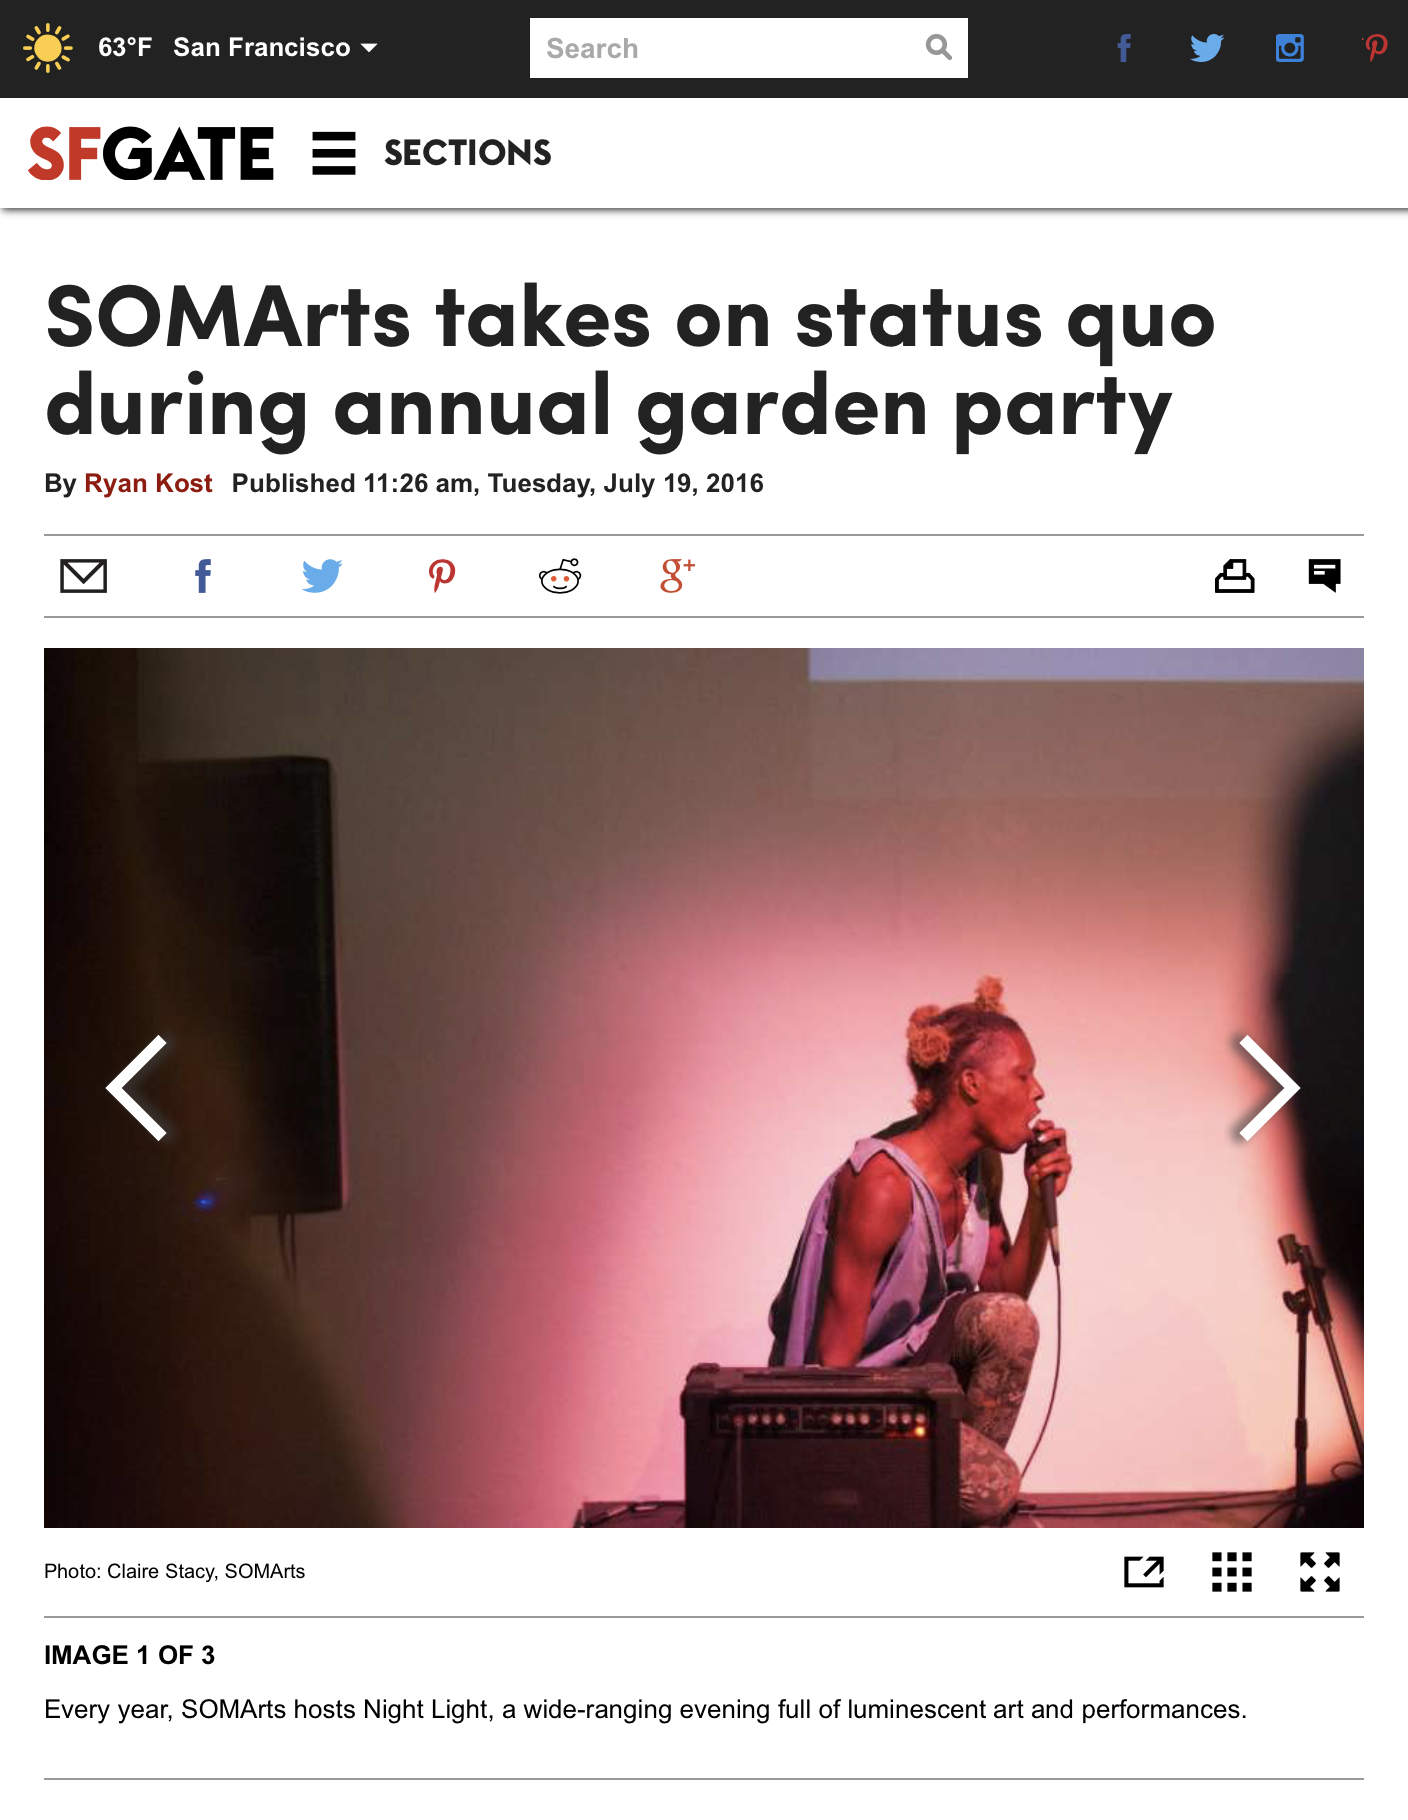 """Kost, Ryan. """"SOMArts Takes on Status Quo during Annual Garden Party."""" SFGate. N.p., 19 July 2016. Web. 22 July 2016."""